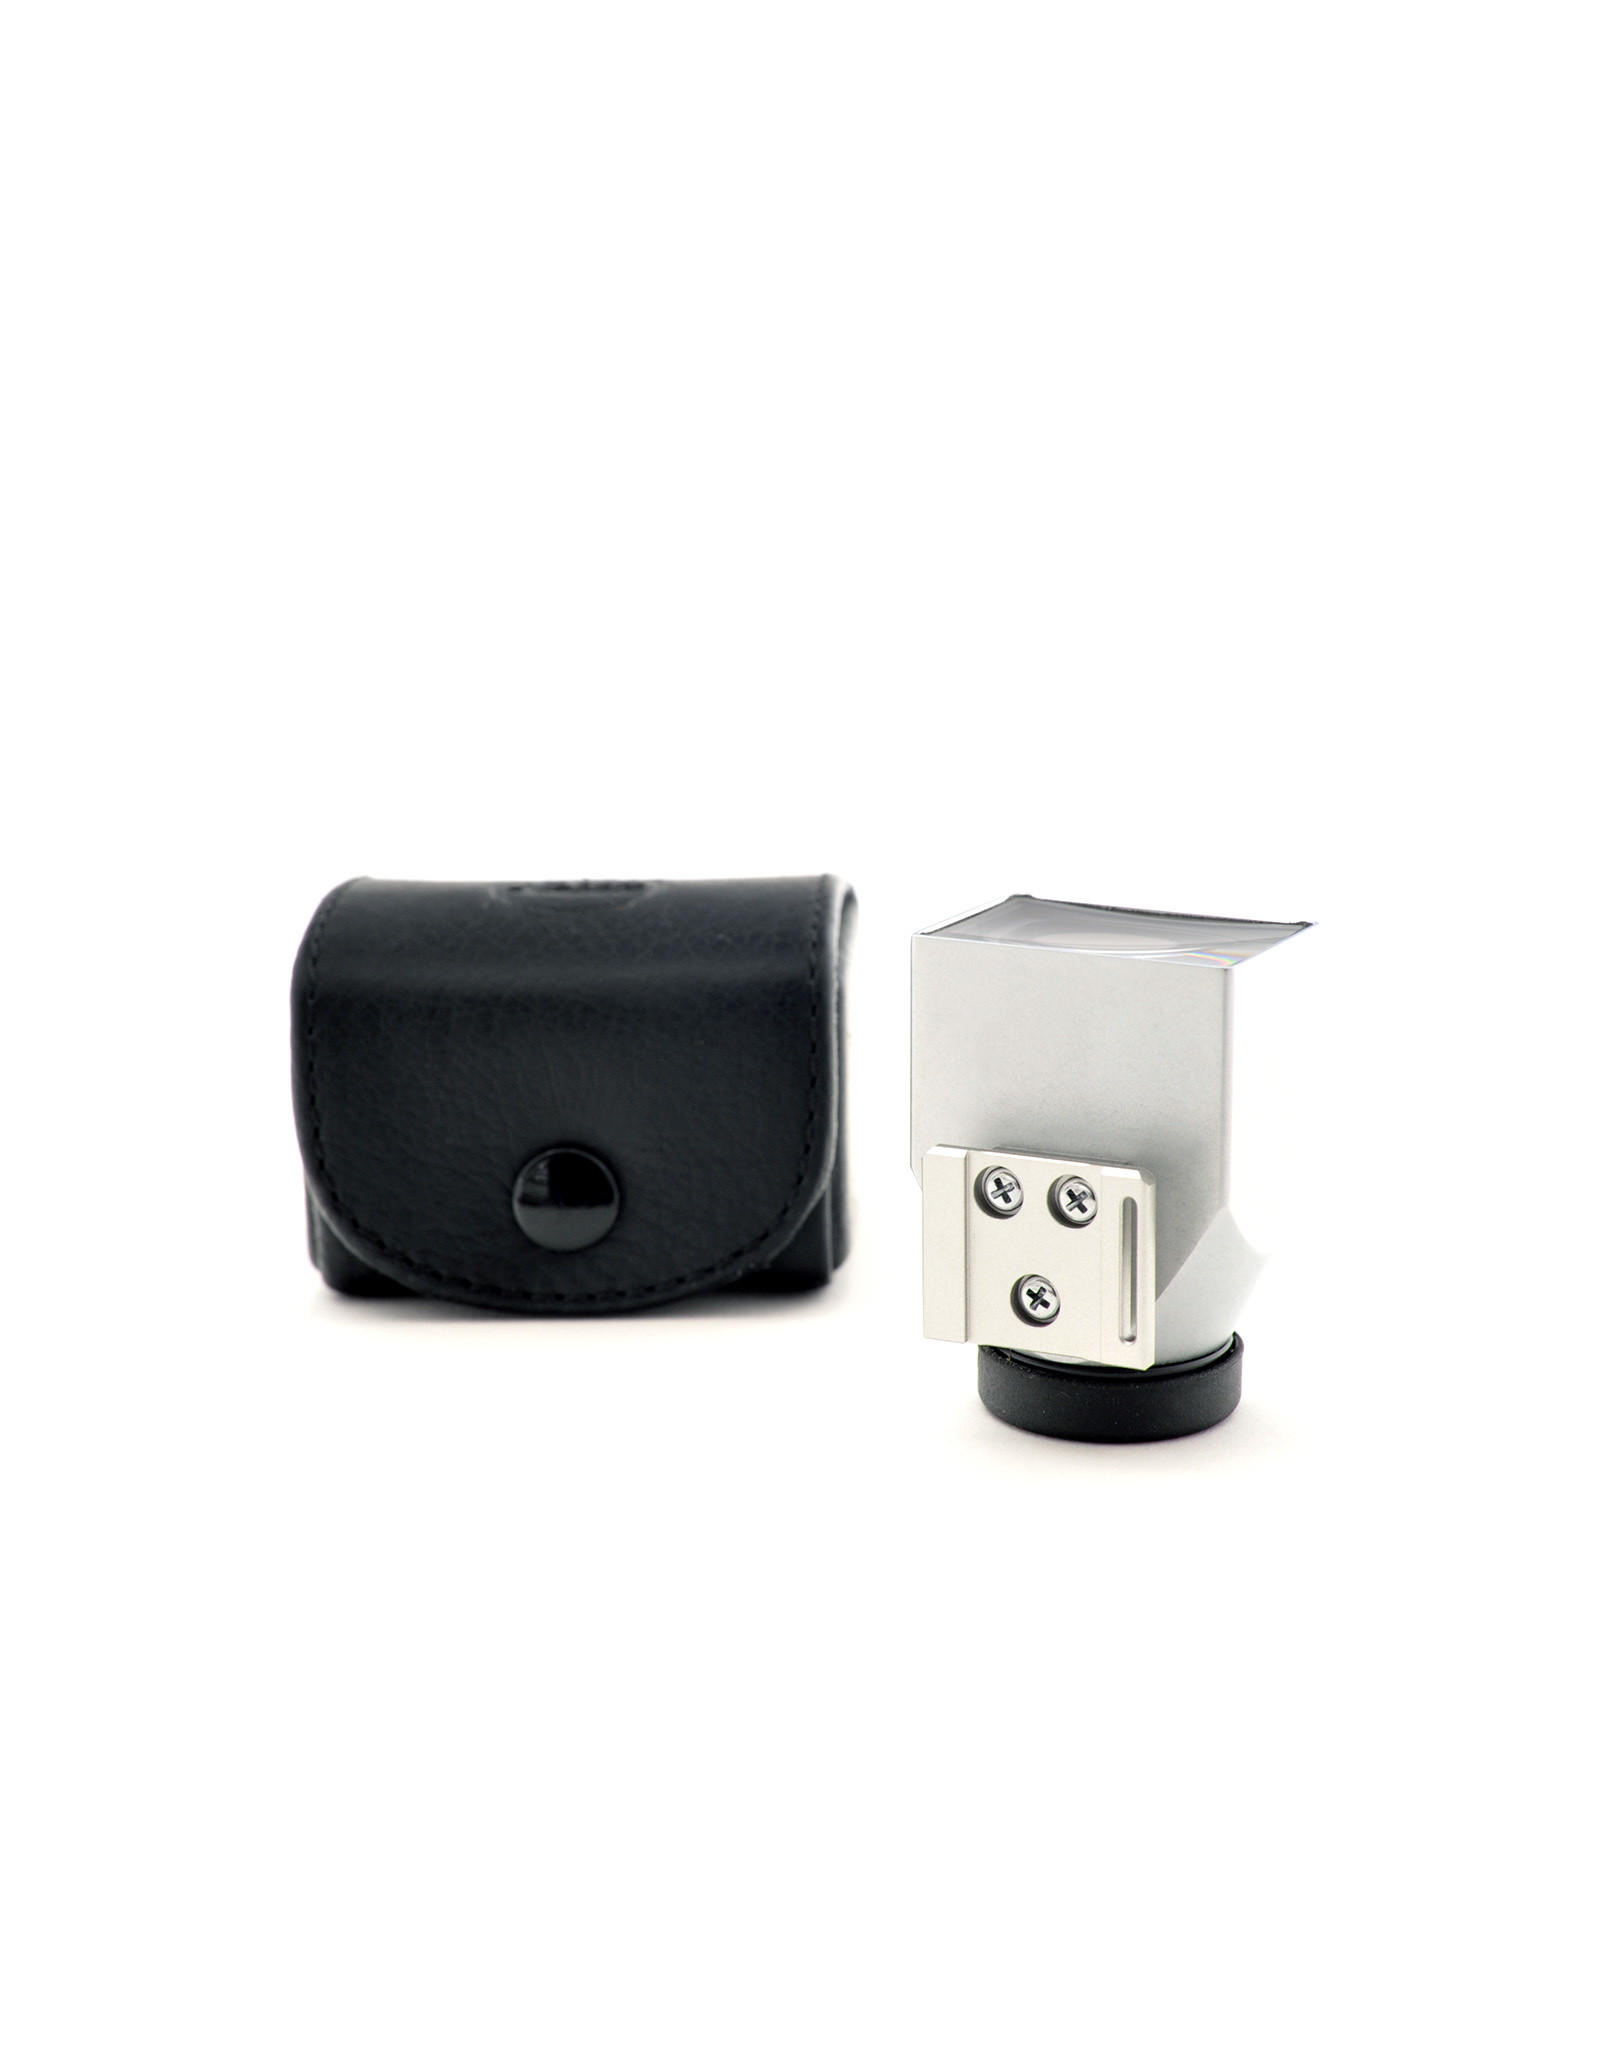 Leica Leica 21mm Bright Line Metal Viewfinder in Silver Chrome (current version)   ALC121405